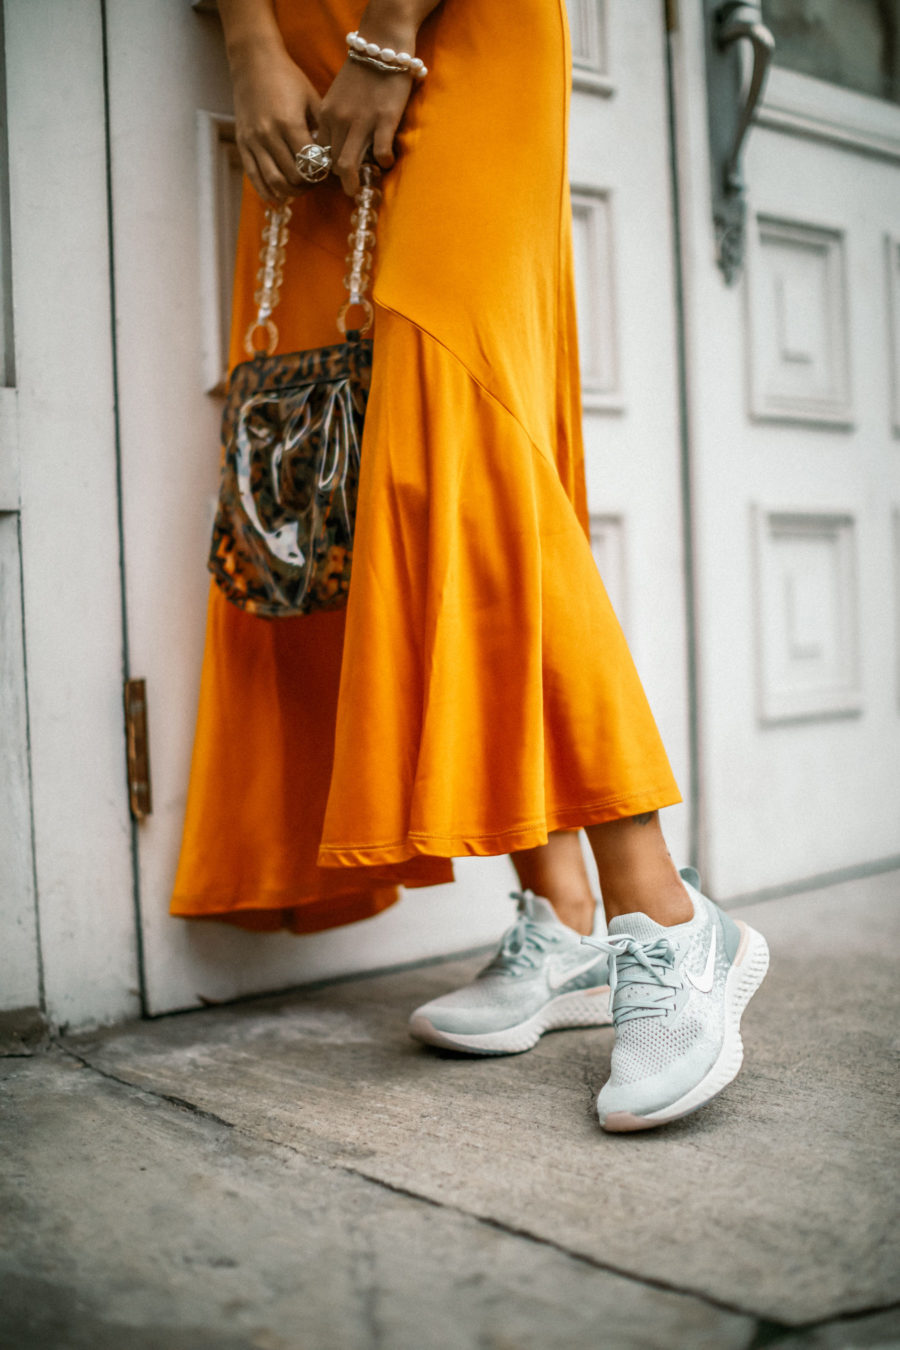 How to Wear Sneakers from Day to Night - Yellow Slip Dress sneakers, Nike Epic React Sneakers, fashion sneakers // Notjessfashion.com